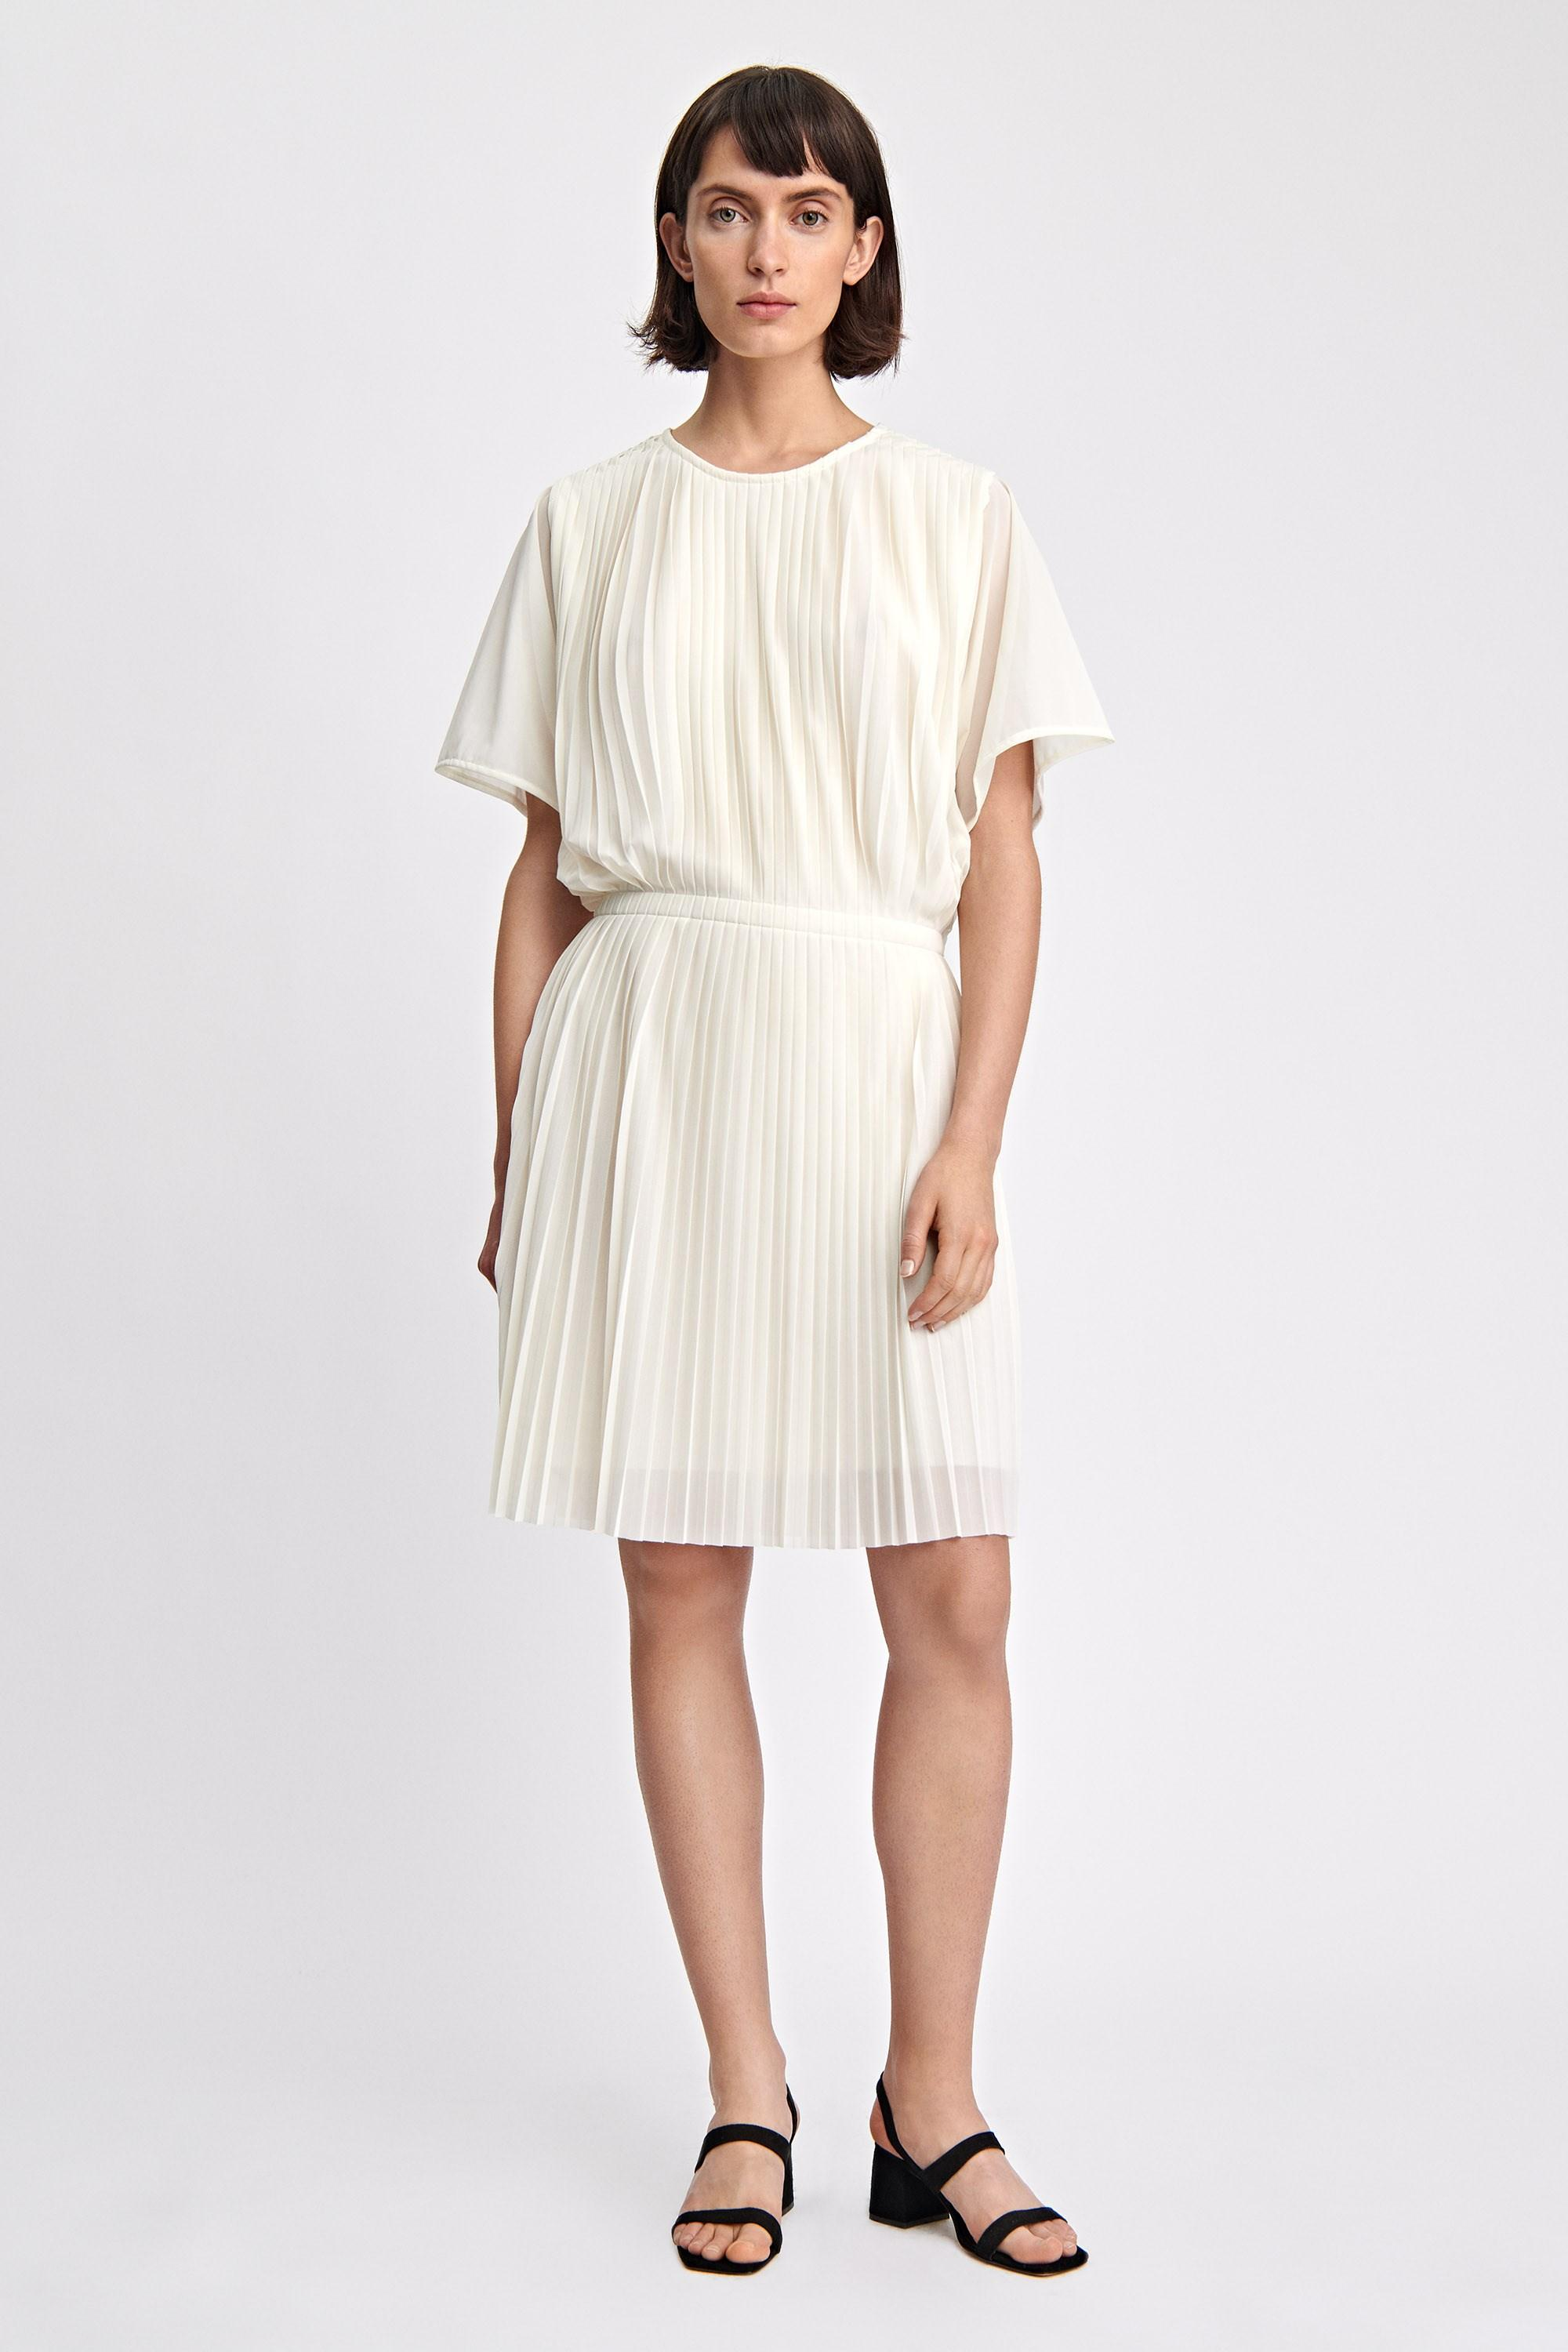 67c8beb69 Filippa K Pleated Dress in White - Lyst